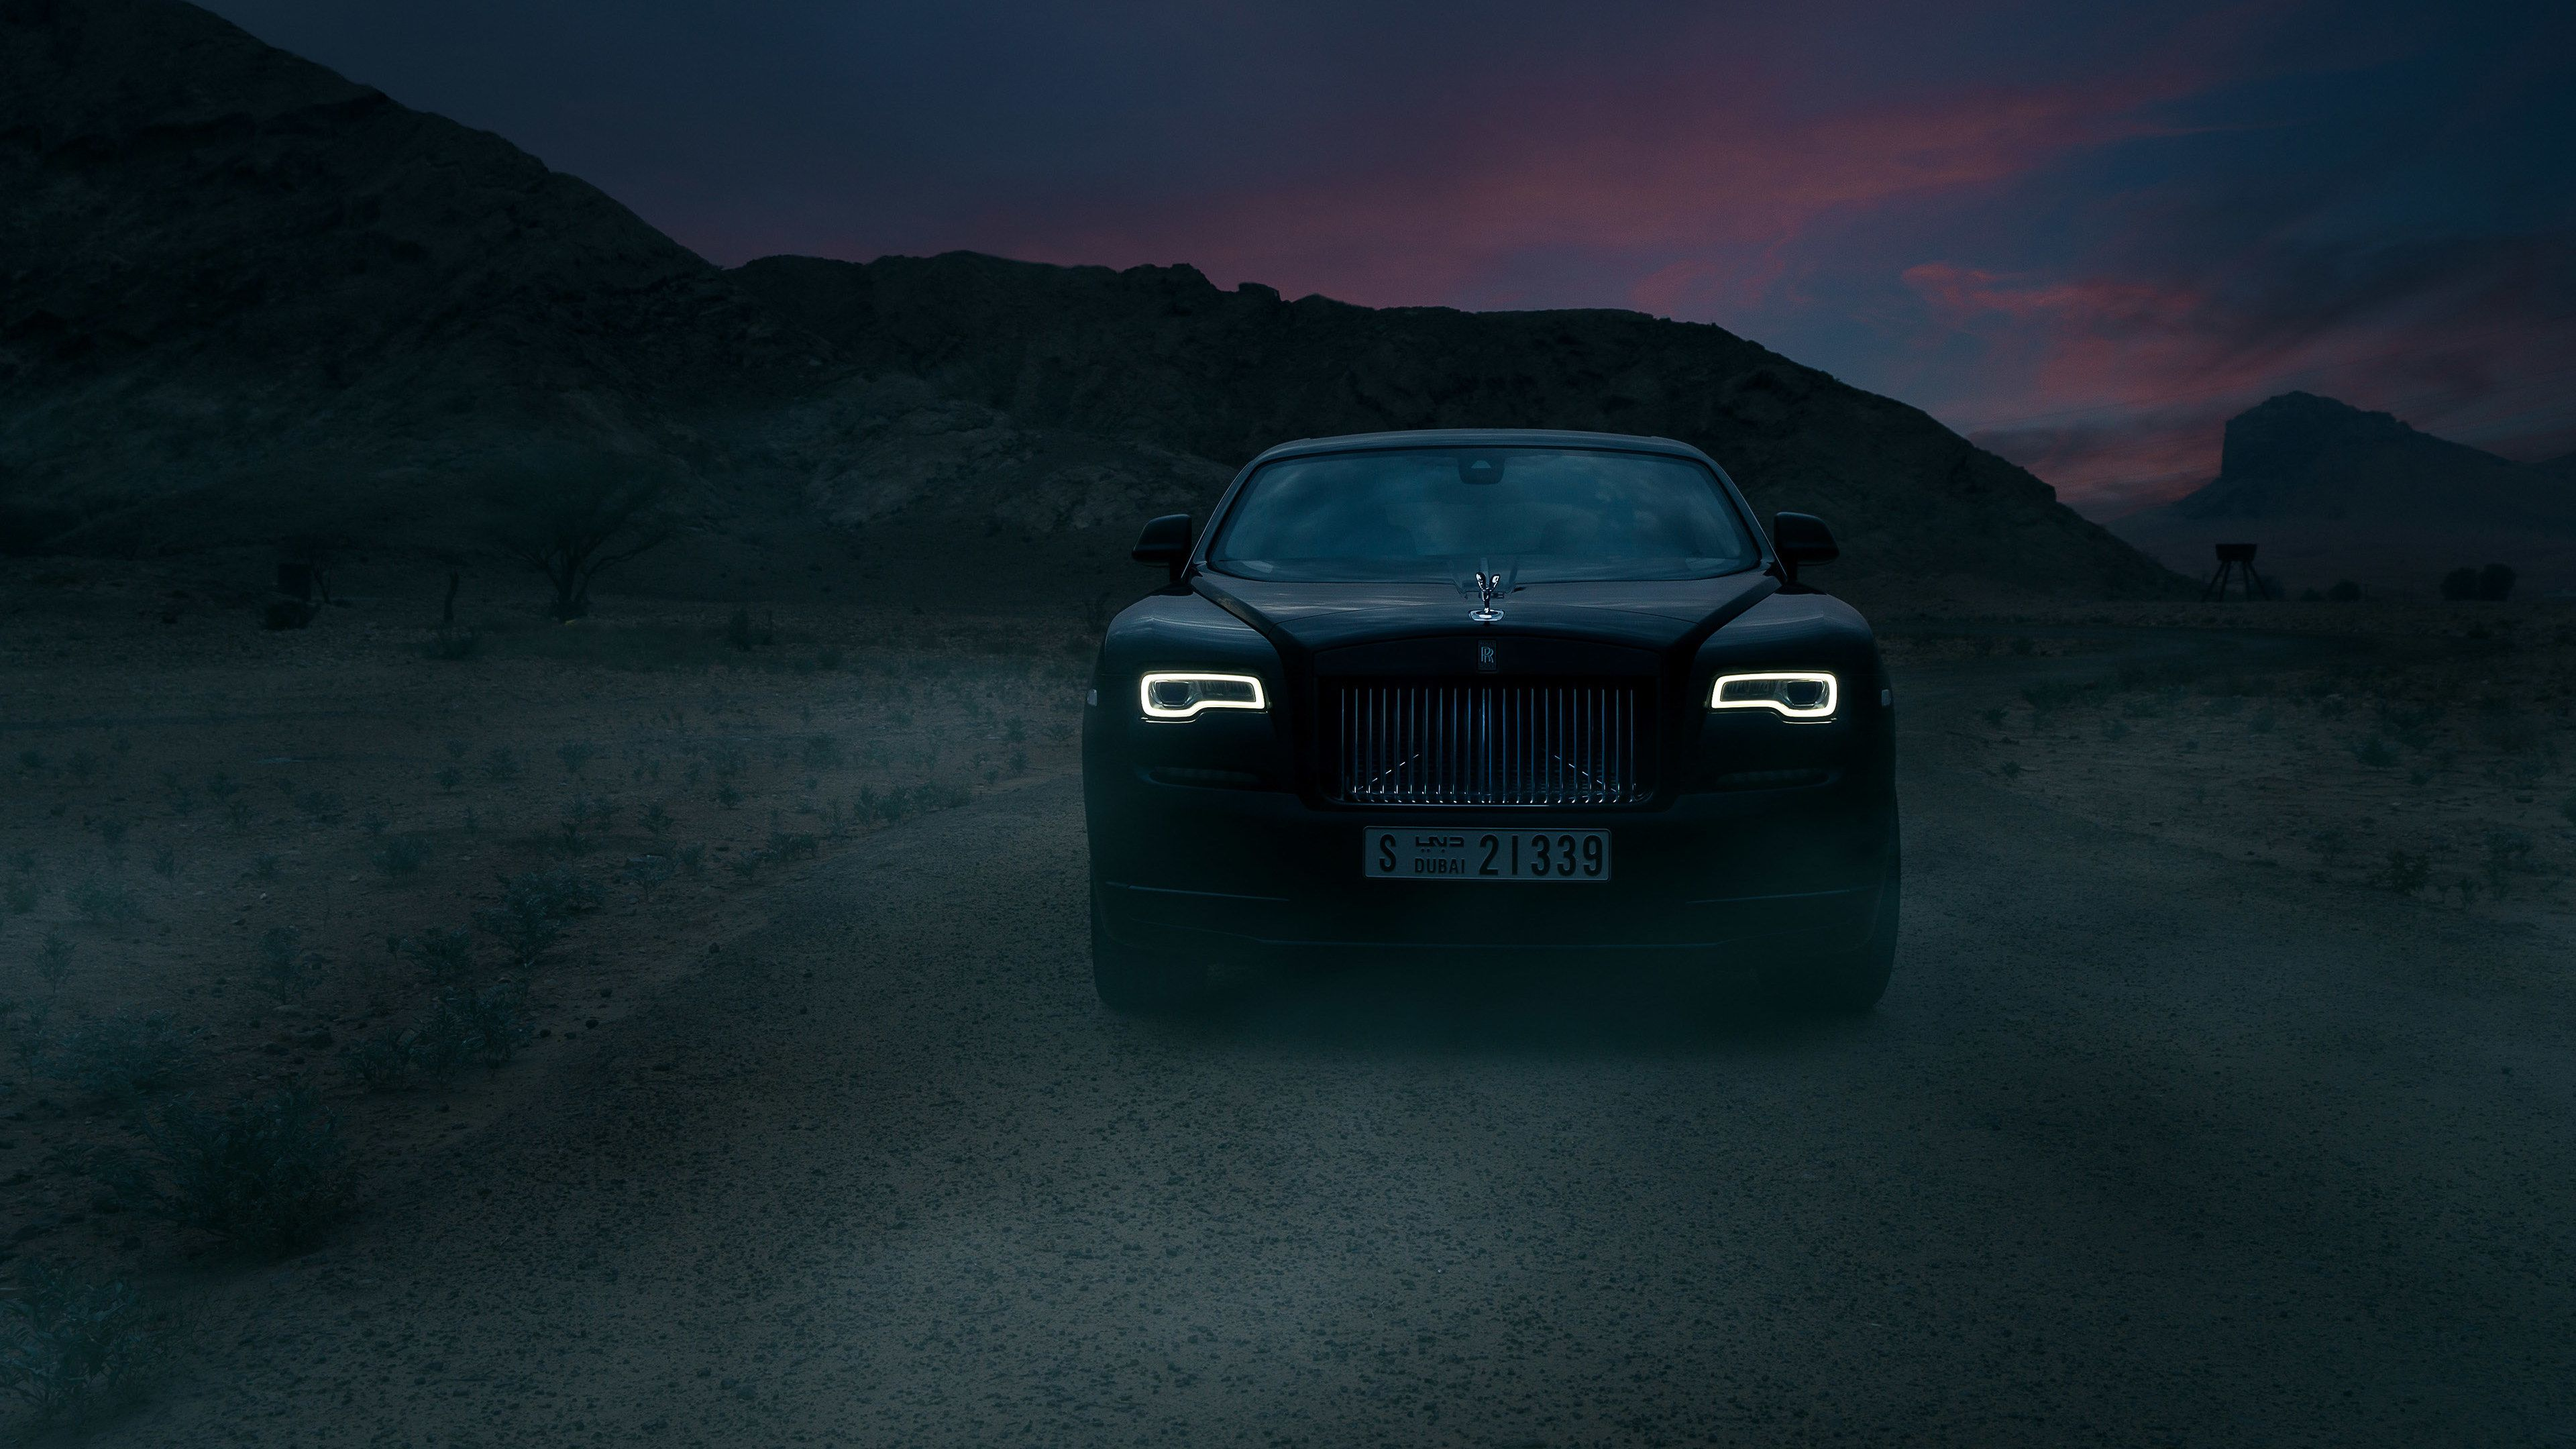 Rolls Royce Wraith Black Badge Rolls Royce Wraith Wallpapers Rolls Royce Wallpapers Hd Wallpa Rolls Royce Wraith Rolls Royce Wraith Black Black Car Wallpaper